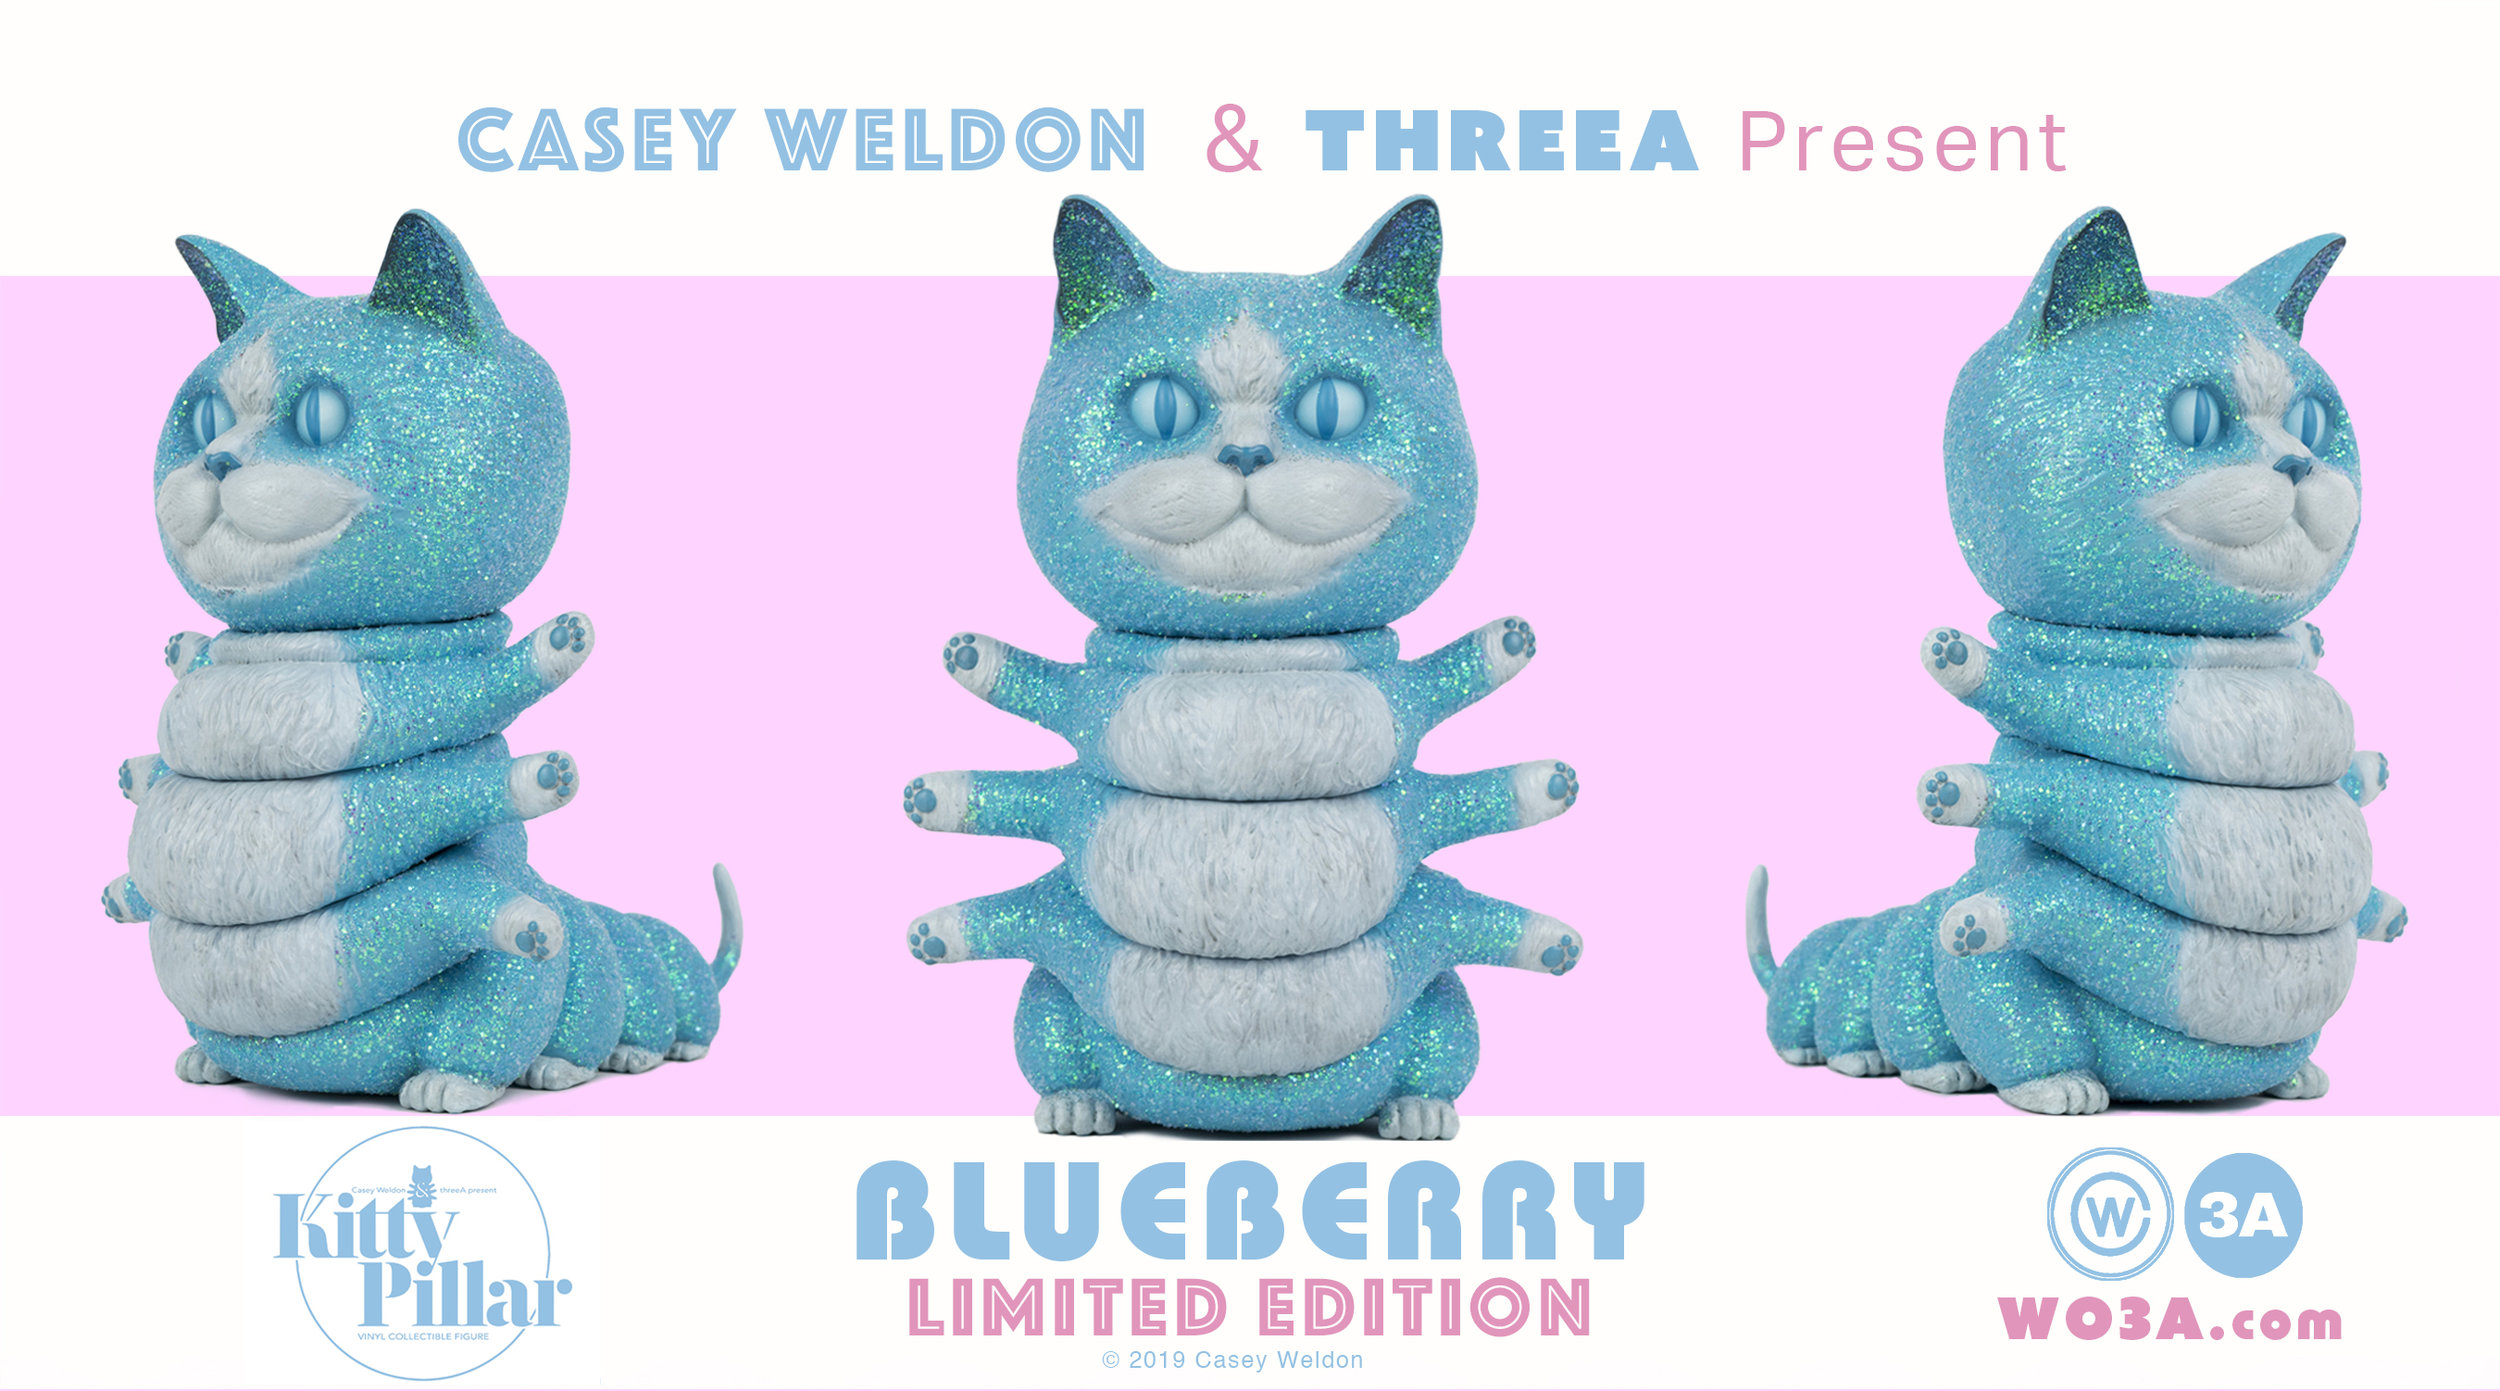 BLUEBERRY KITTYPILLAR